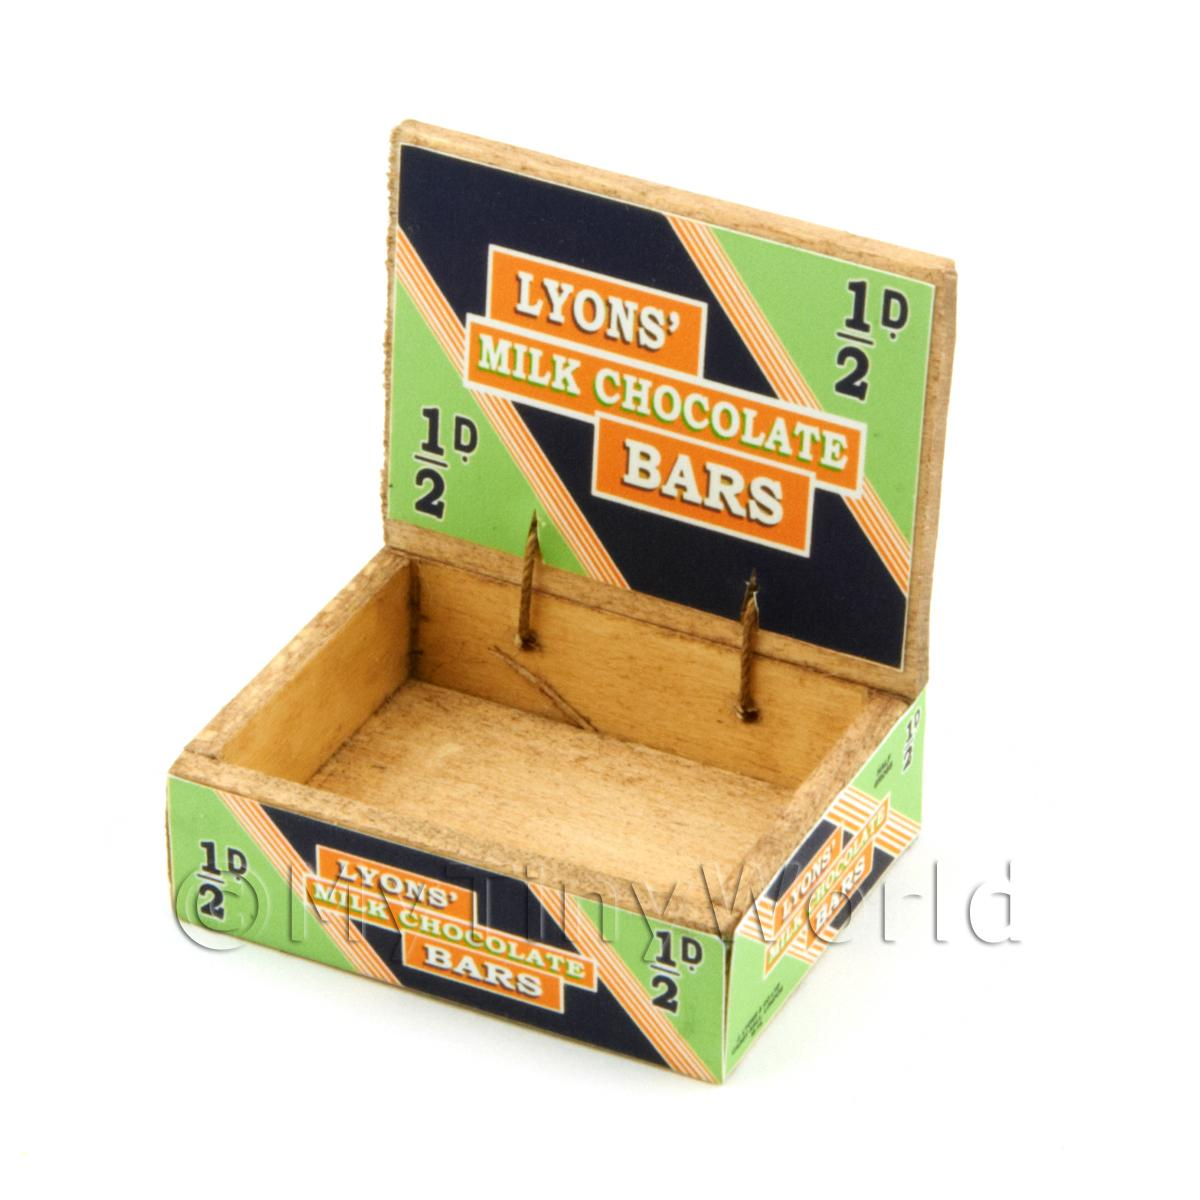 Dolls House Lyons Chocolate Bars Counter Display Box